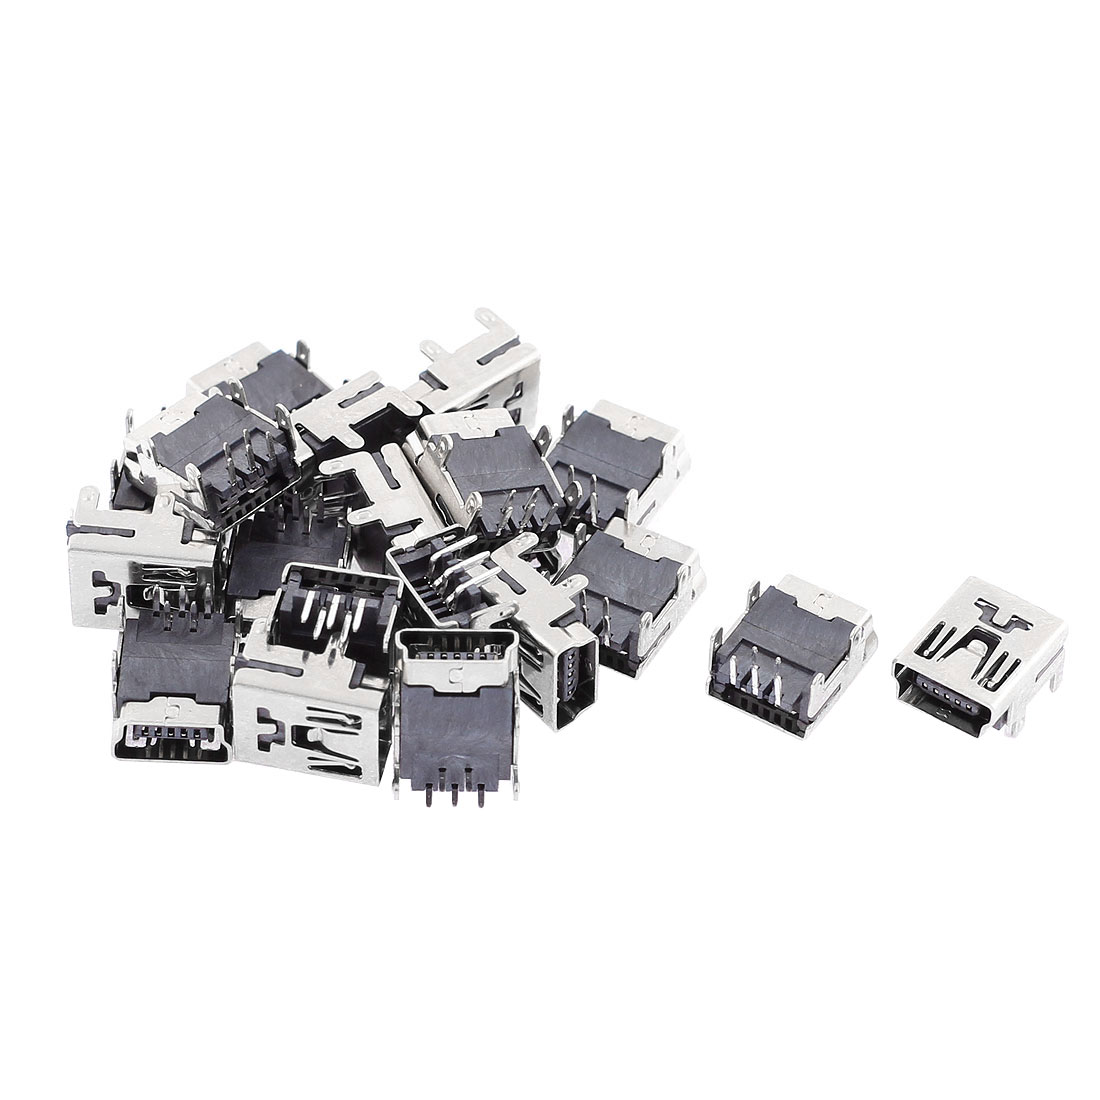 20 Pcs Mini USB Type B Female Socket 5-Pin Right Angle DIP Jack Connector